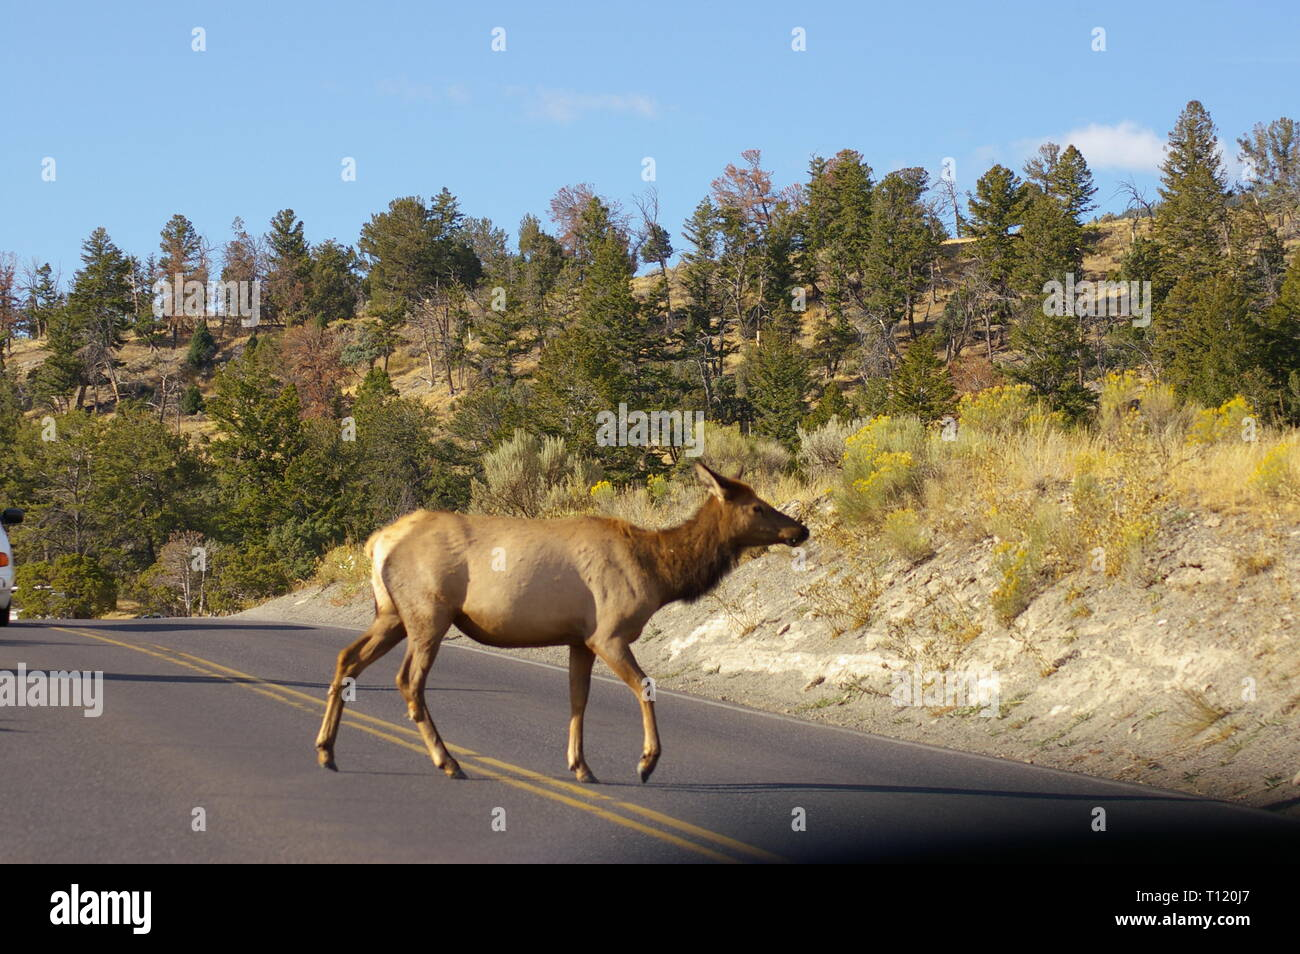 Female doe elk crossing the road with green pine trees on hillside in background. Yellowstone National Park, USA - Stock Image